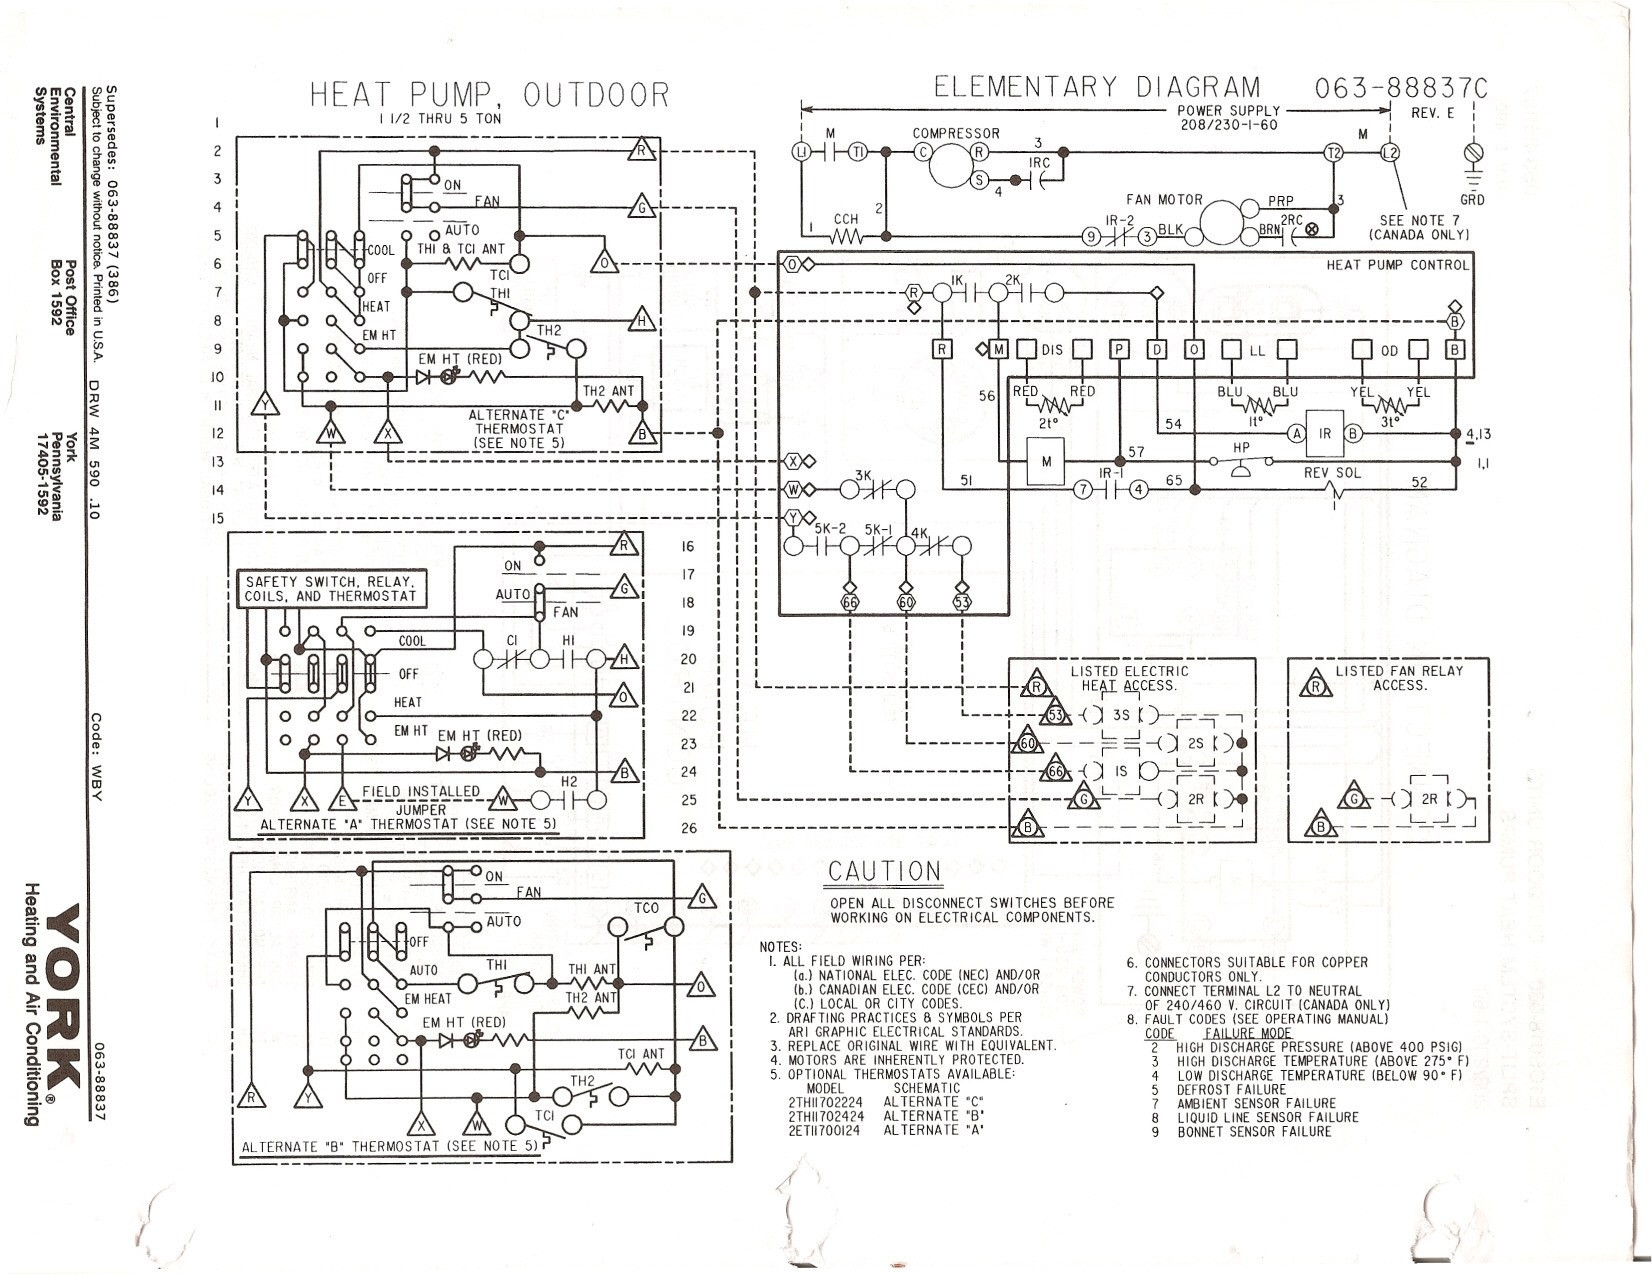 york air handler wiring diagram Collection-Carrier Air Handler Wiring Diagram Fresh York Heat Pump Wiring Diagram And Carrier With Ladder Basic 1-j